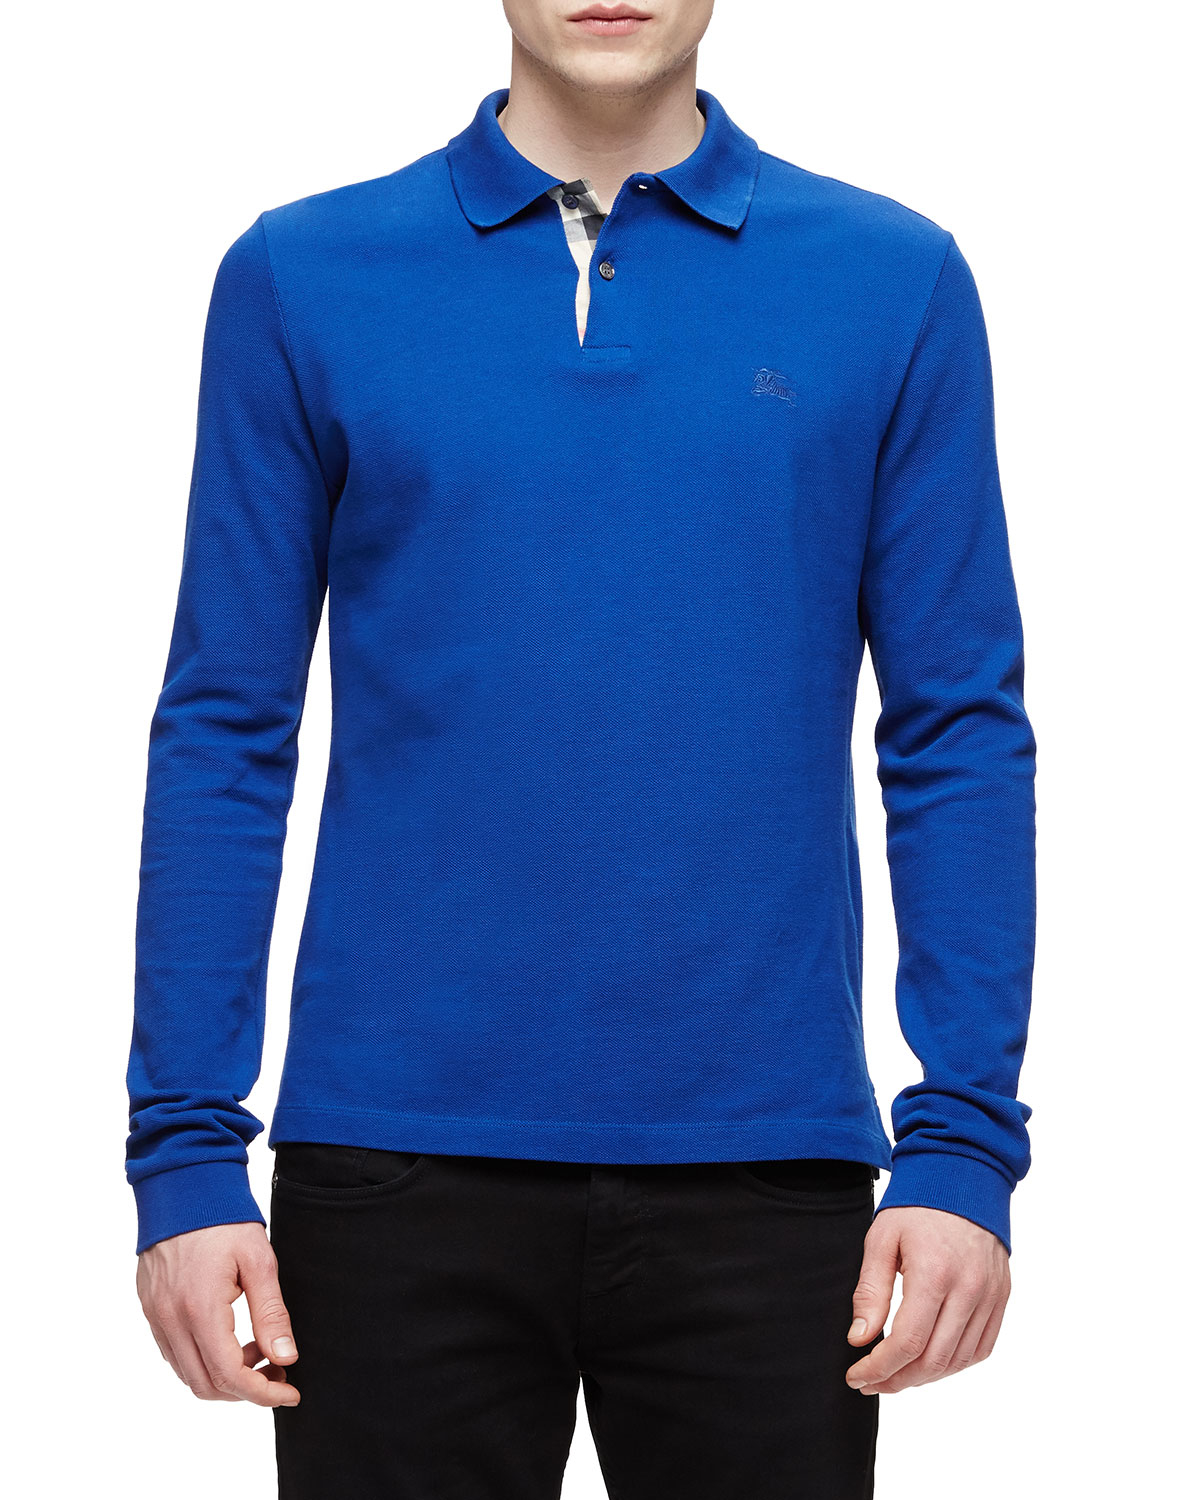 Burberry brit long sleeve pique polo shirt in blue for men for Mens long sleeve pique polo shirts